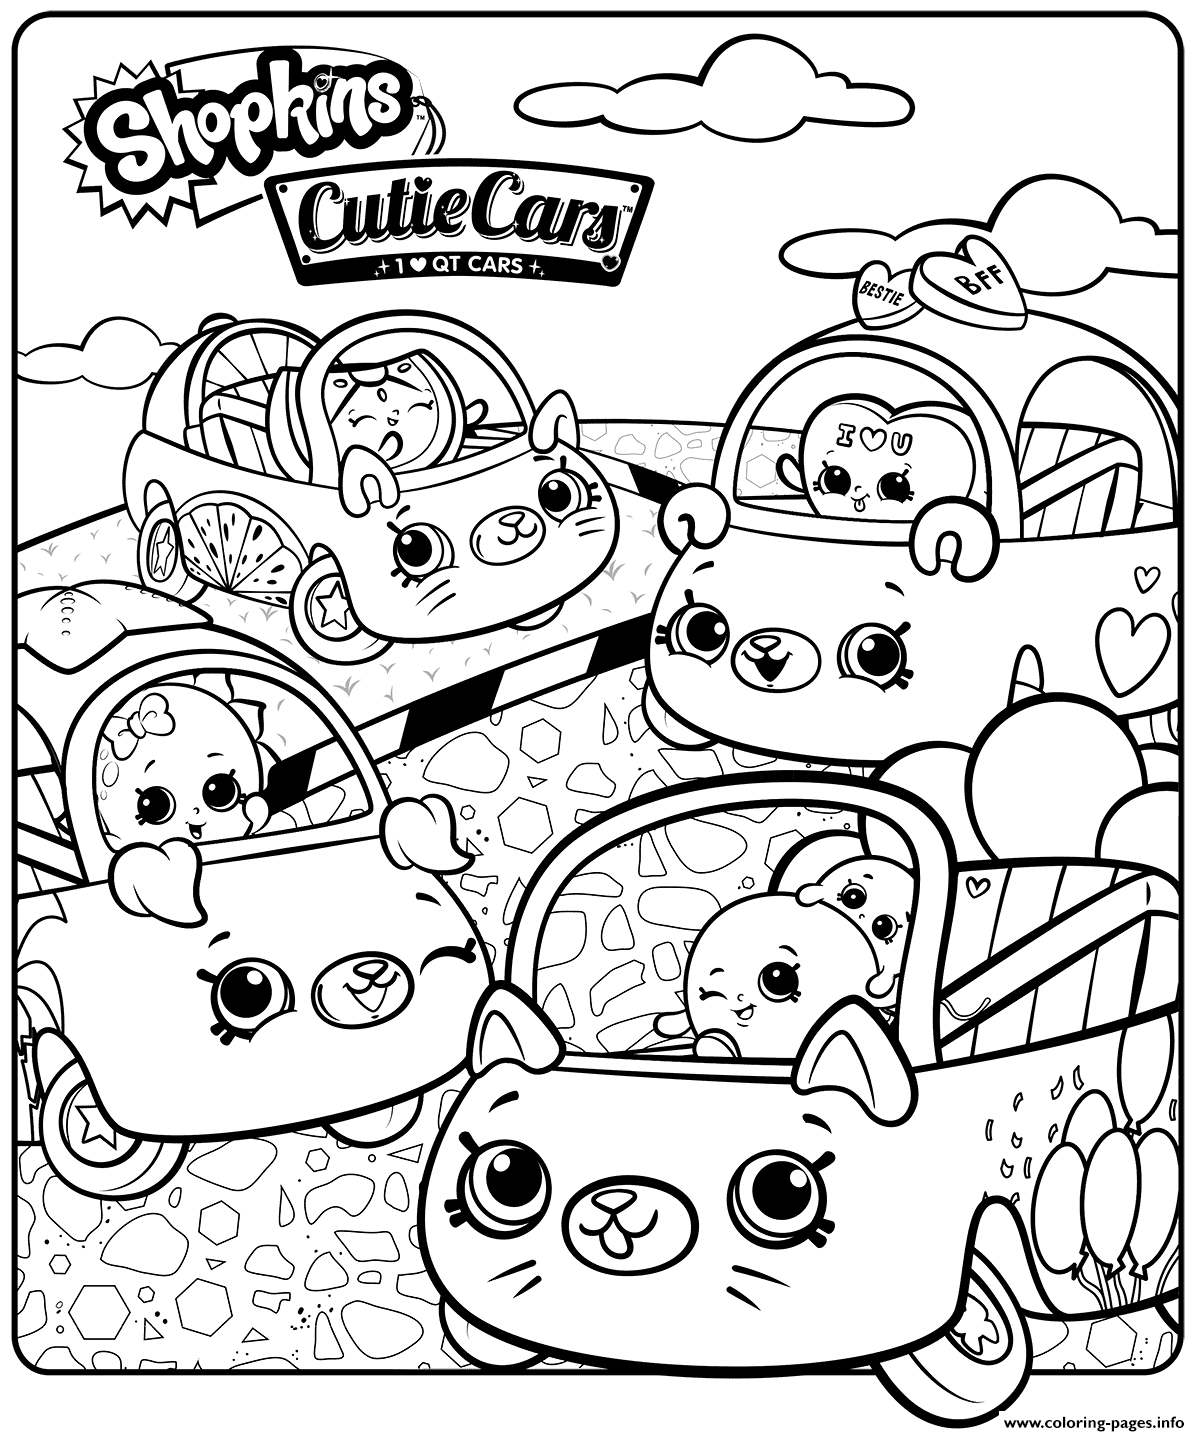 Cute Shopkins Coloring Page - Get Coloring Pages | 1436x1200